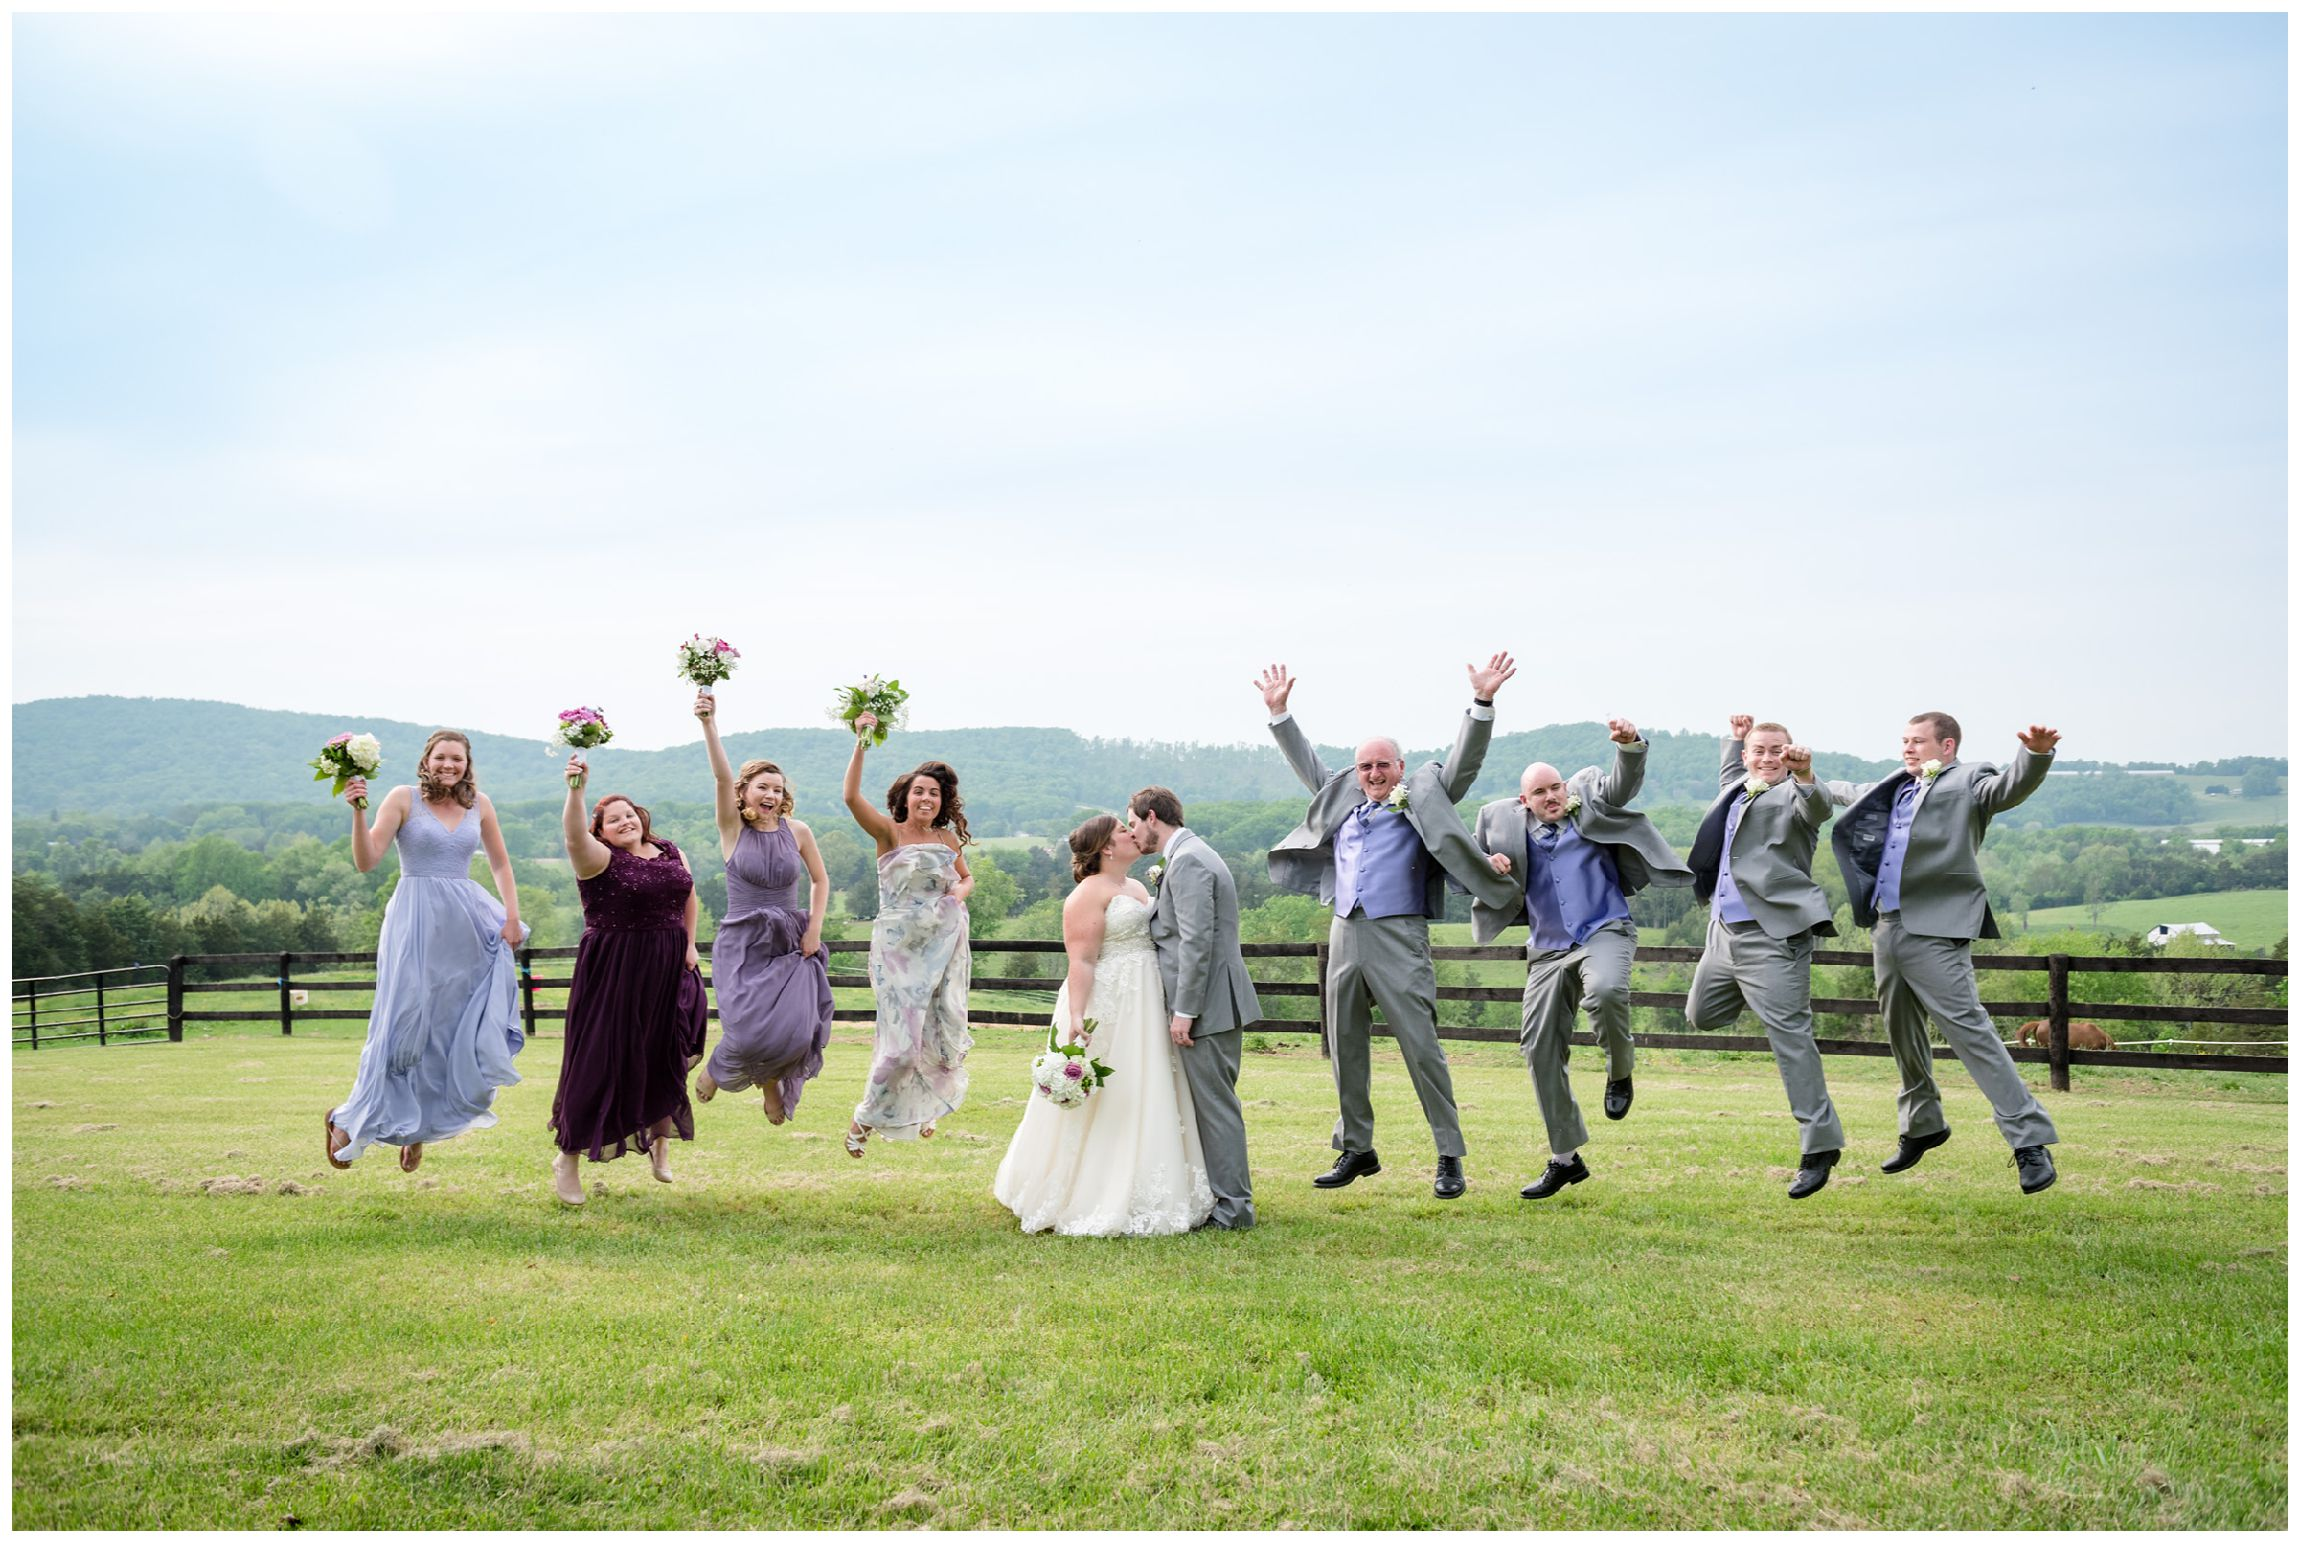 bridal party jumping against mountain backdrop after wedding at Wolftrap Farm in Virginia